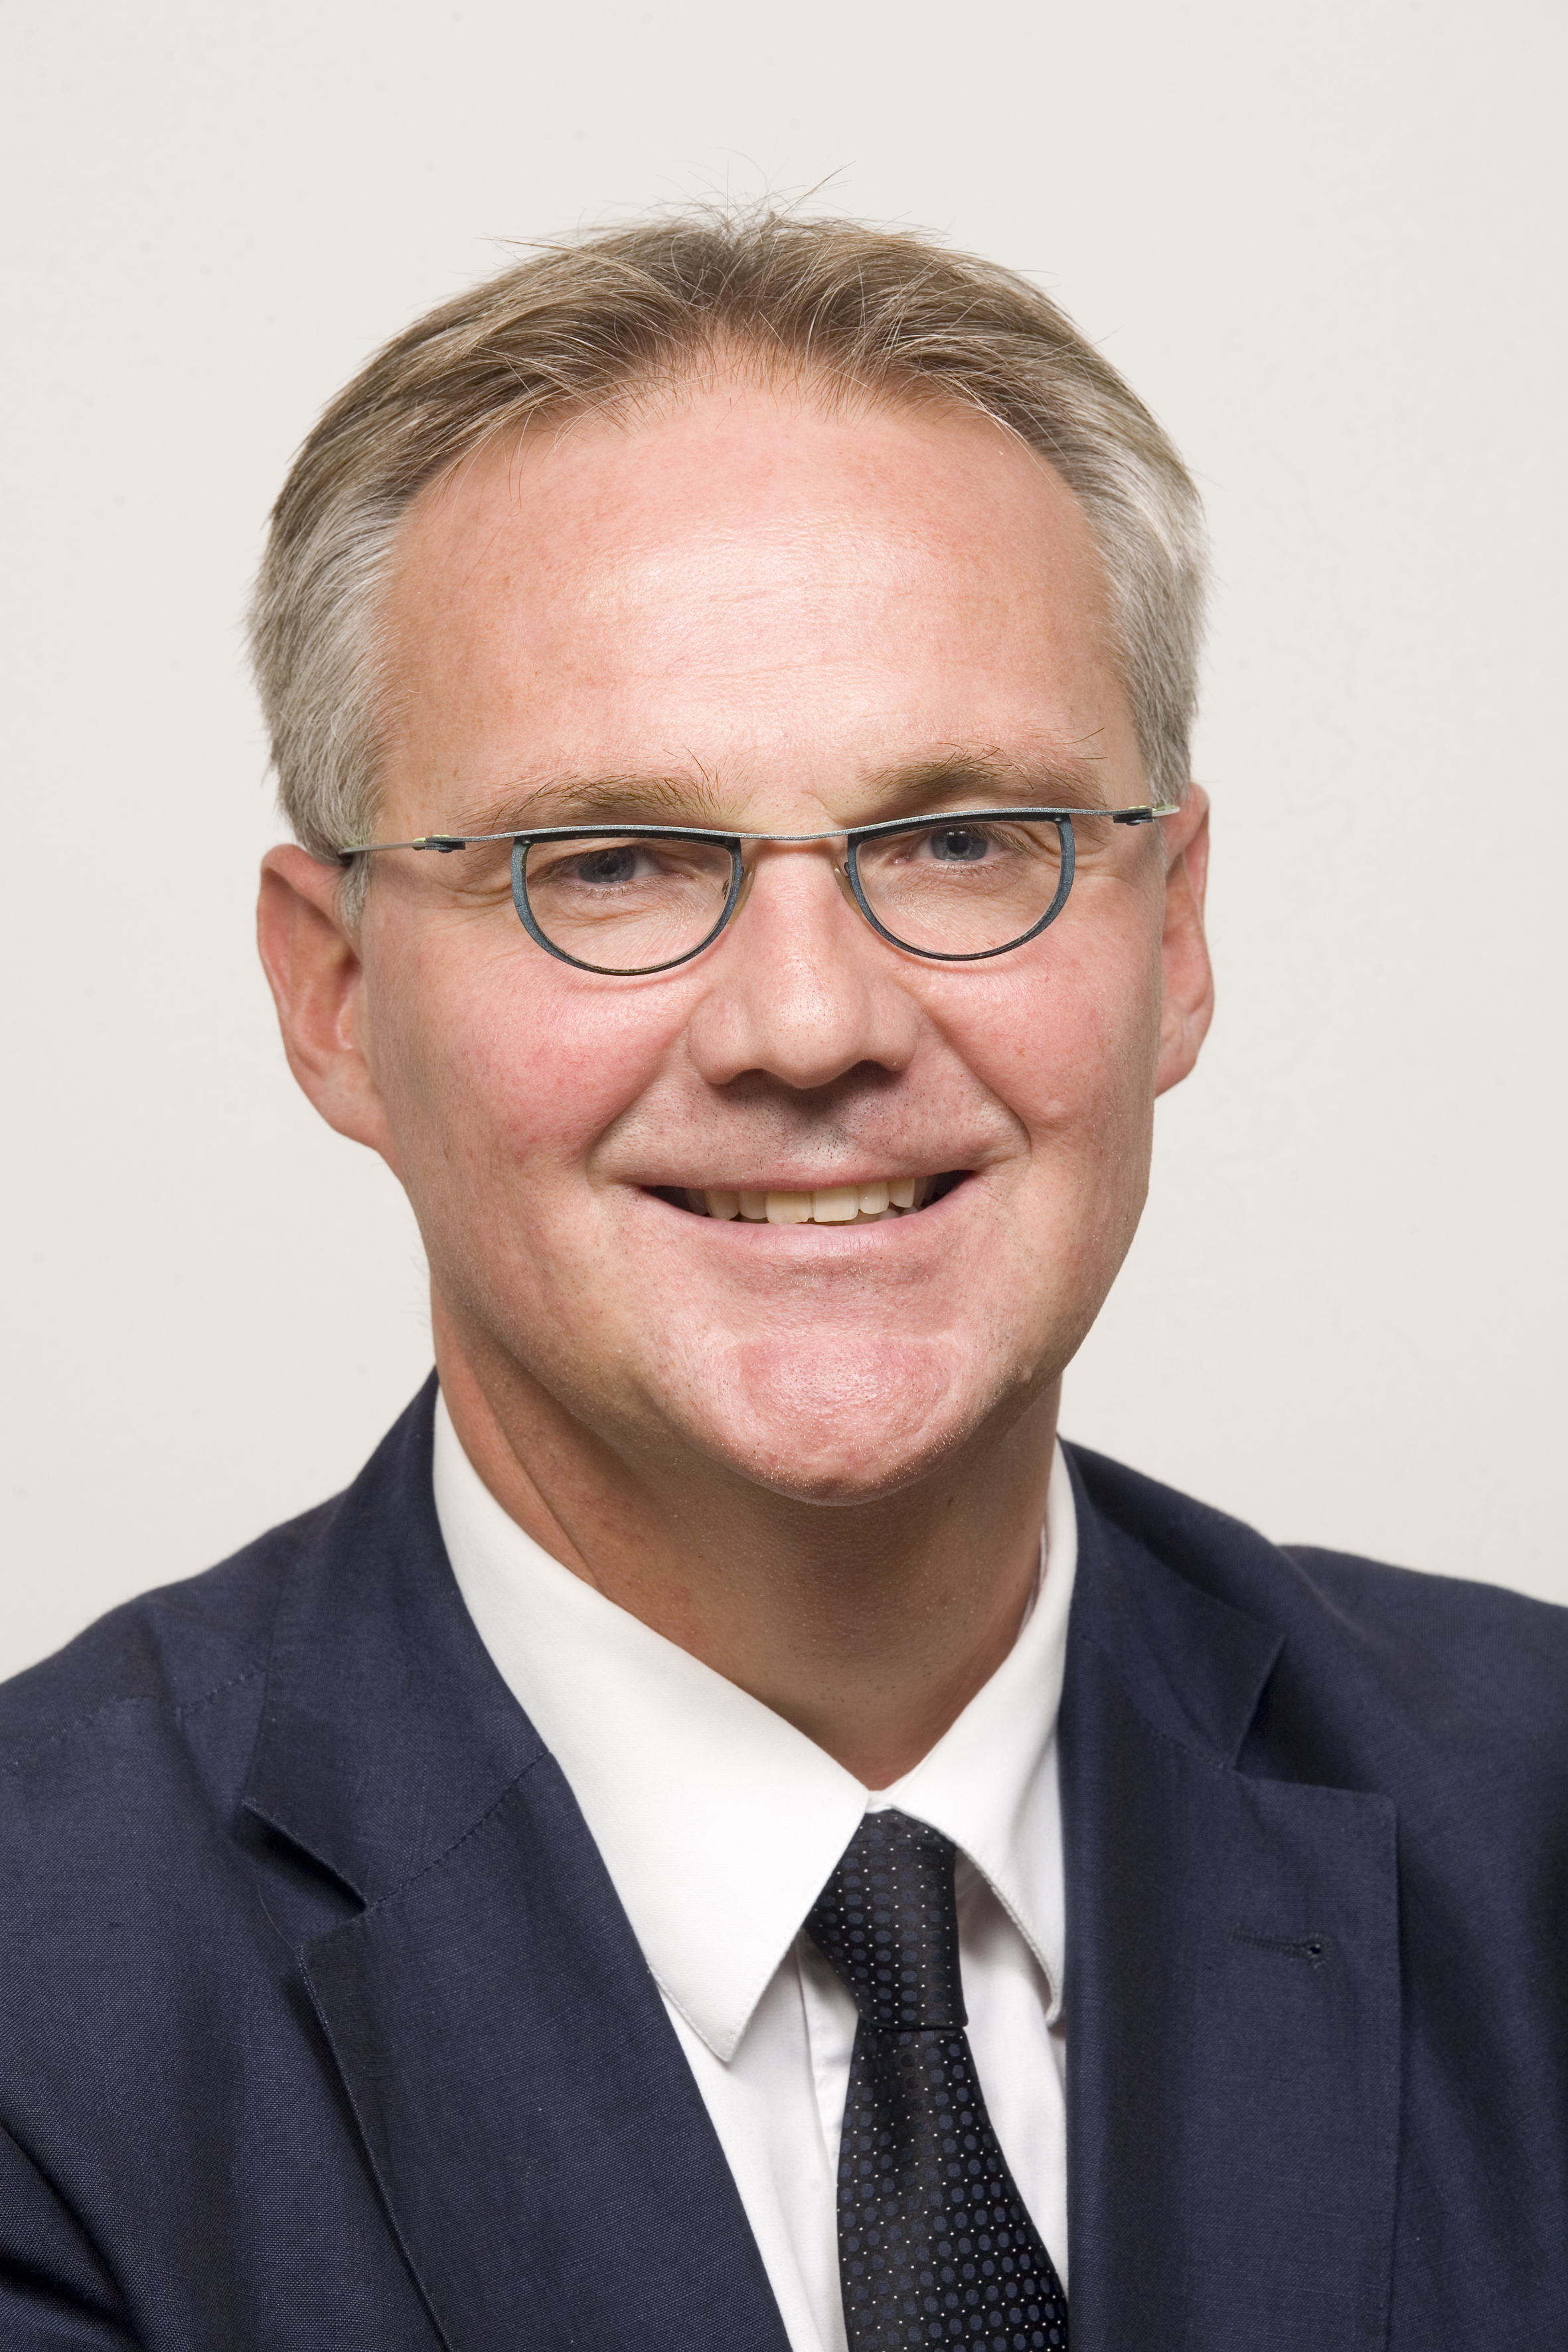 Friso Roscam Abbing, Head of Department, Communication